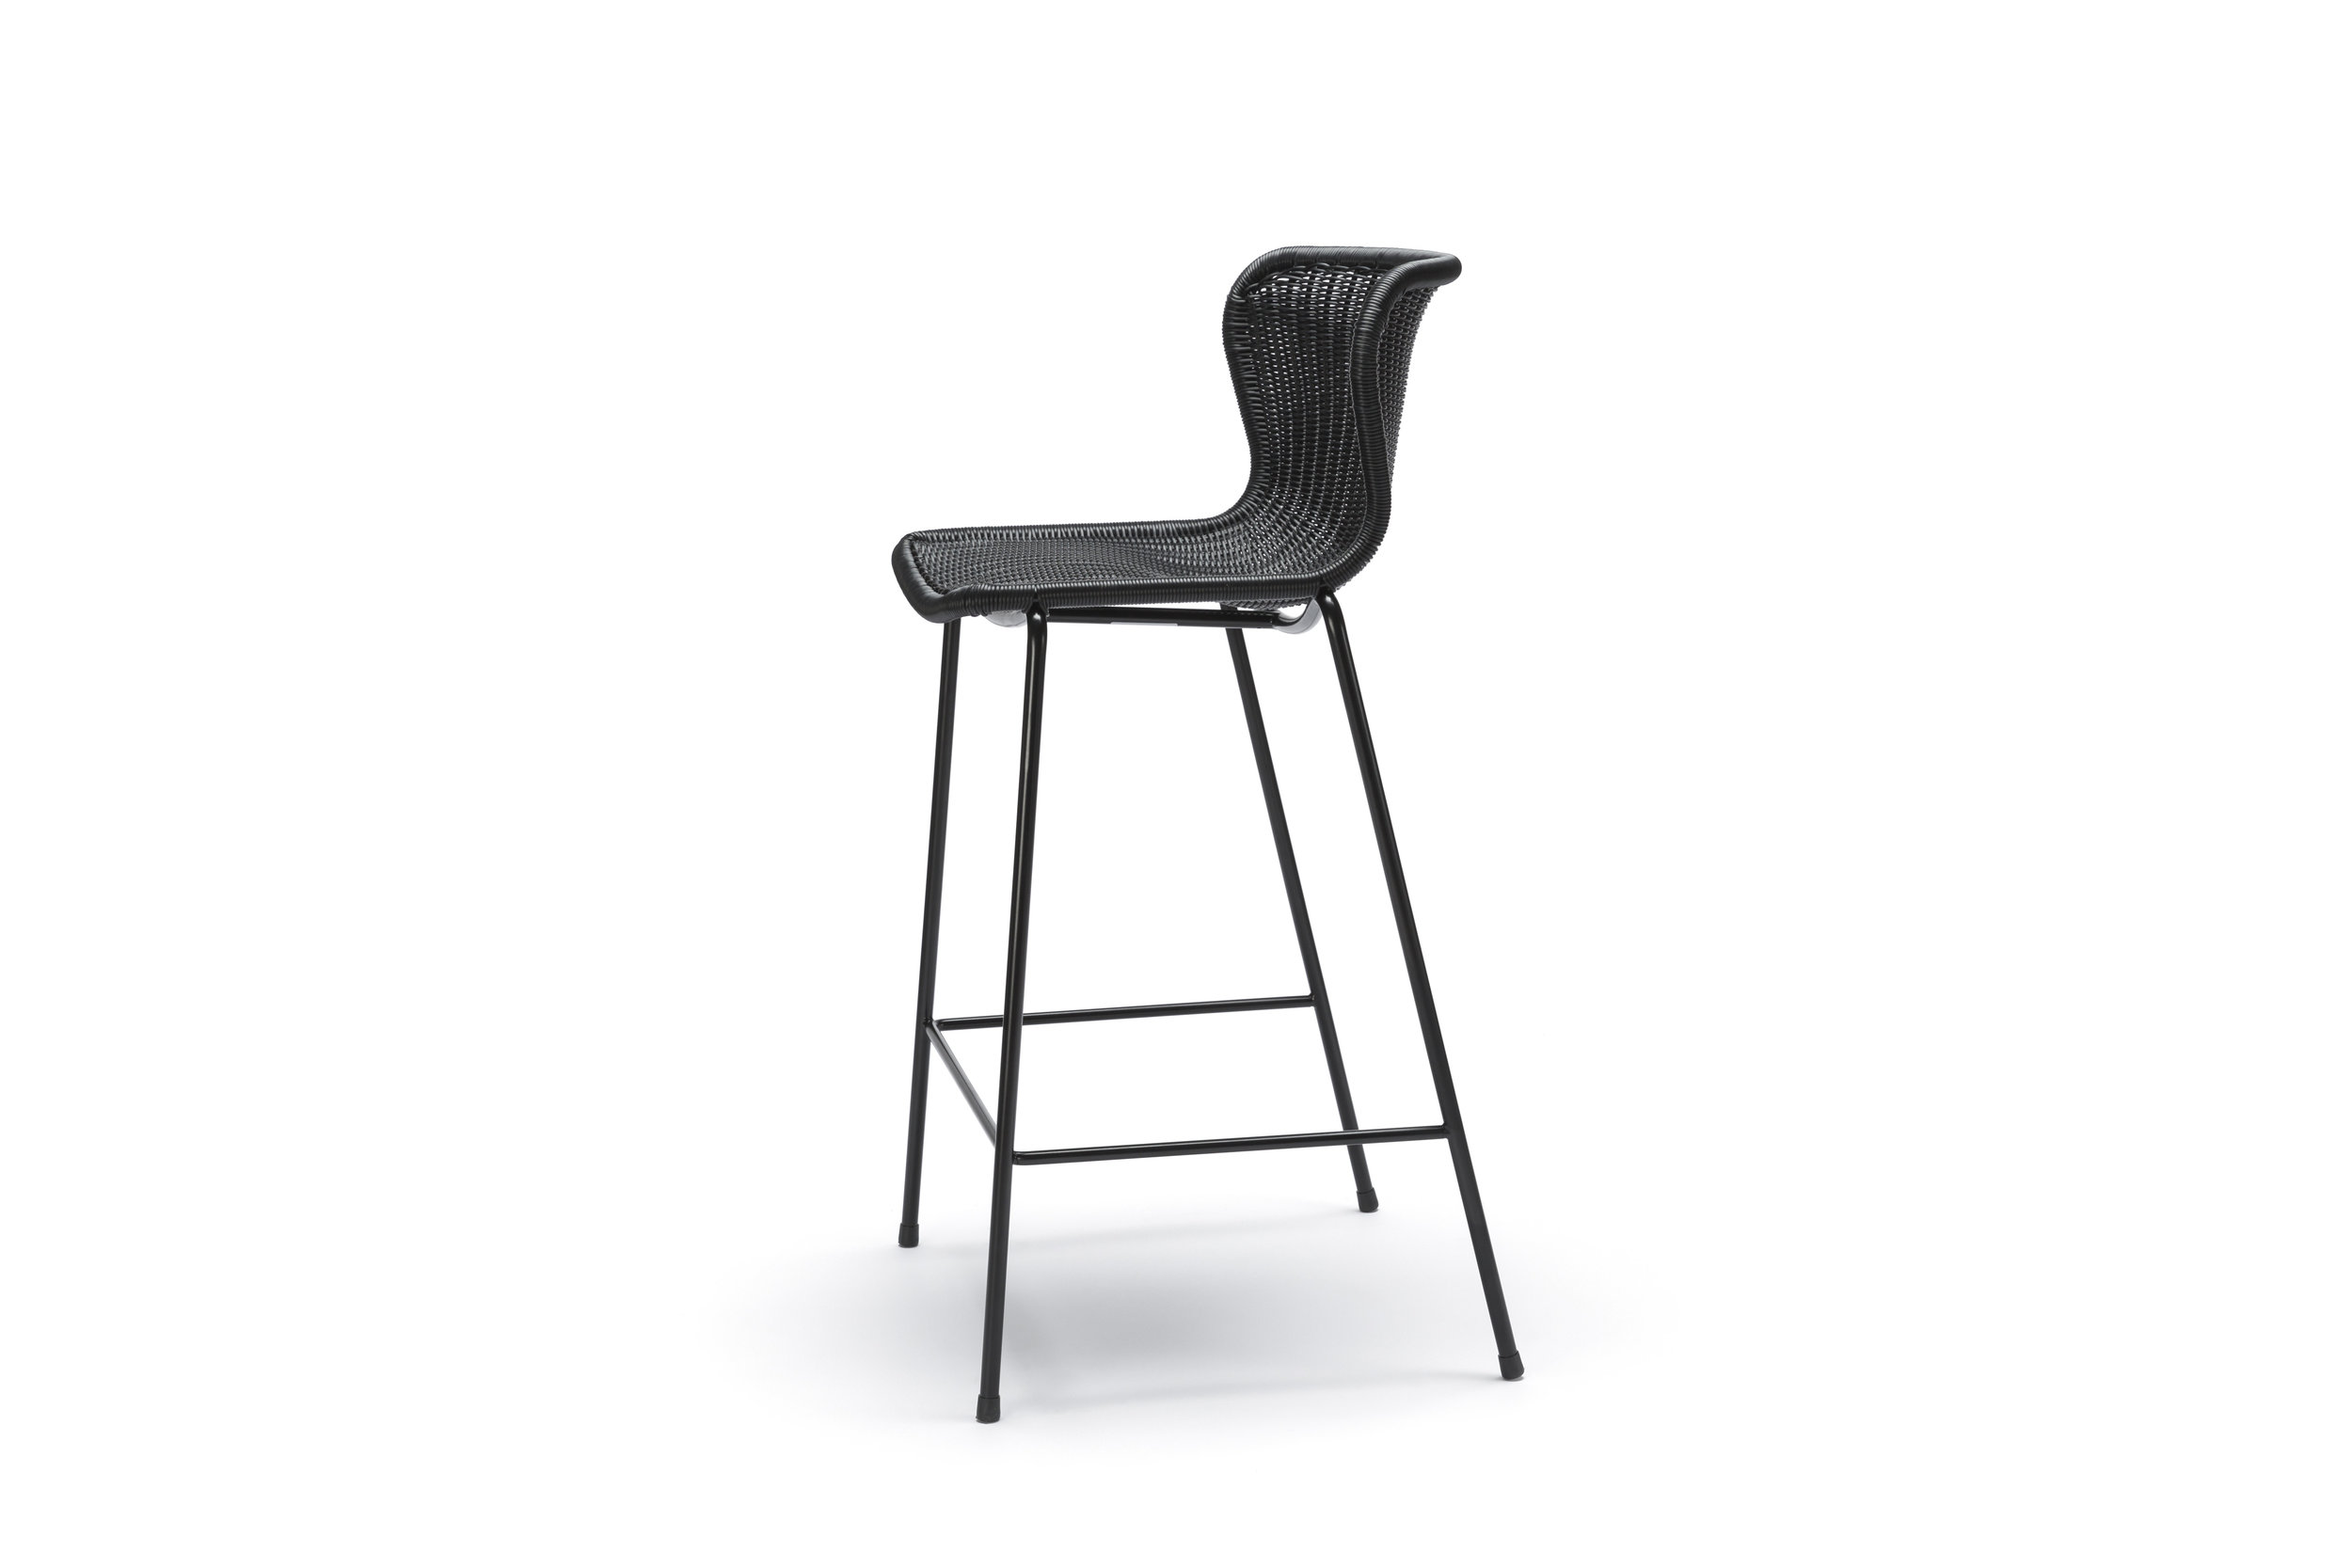 Outdoor C603 Stool - Black Polyethylene